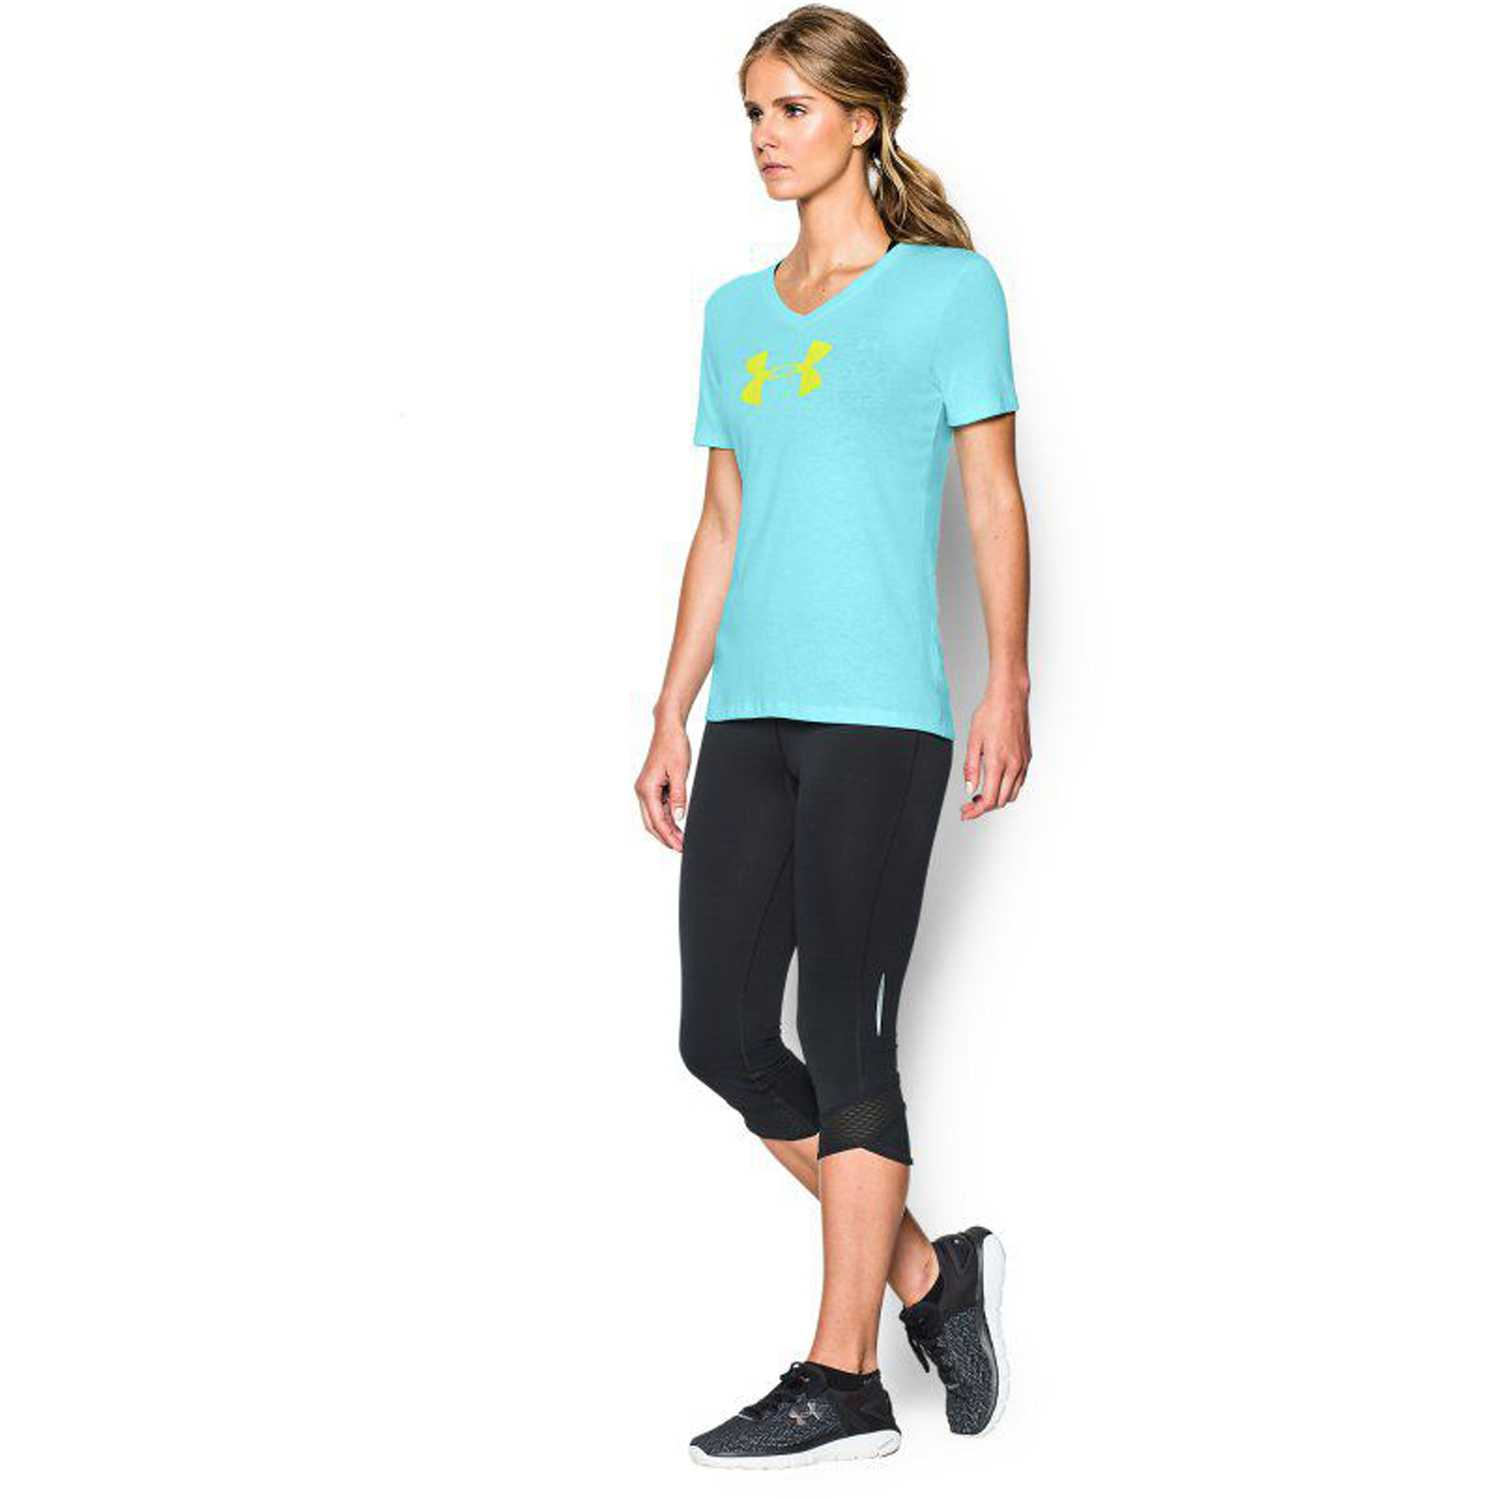 Polo de Mujer Under Armour Celeste branded core